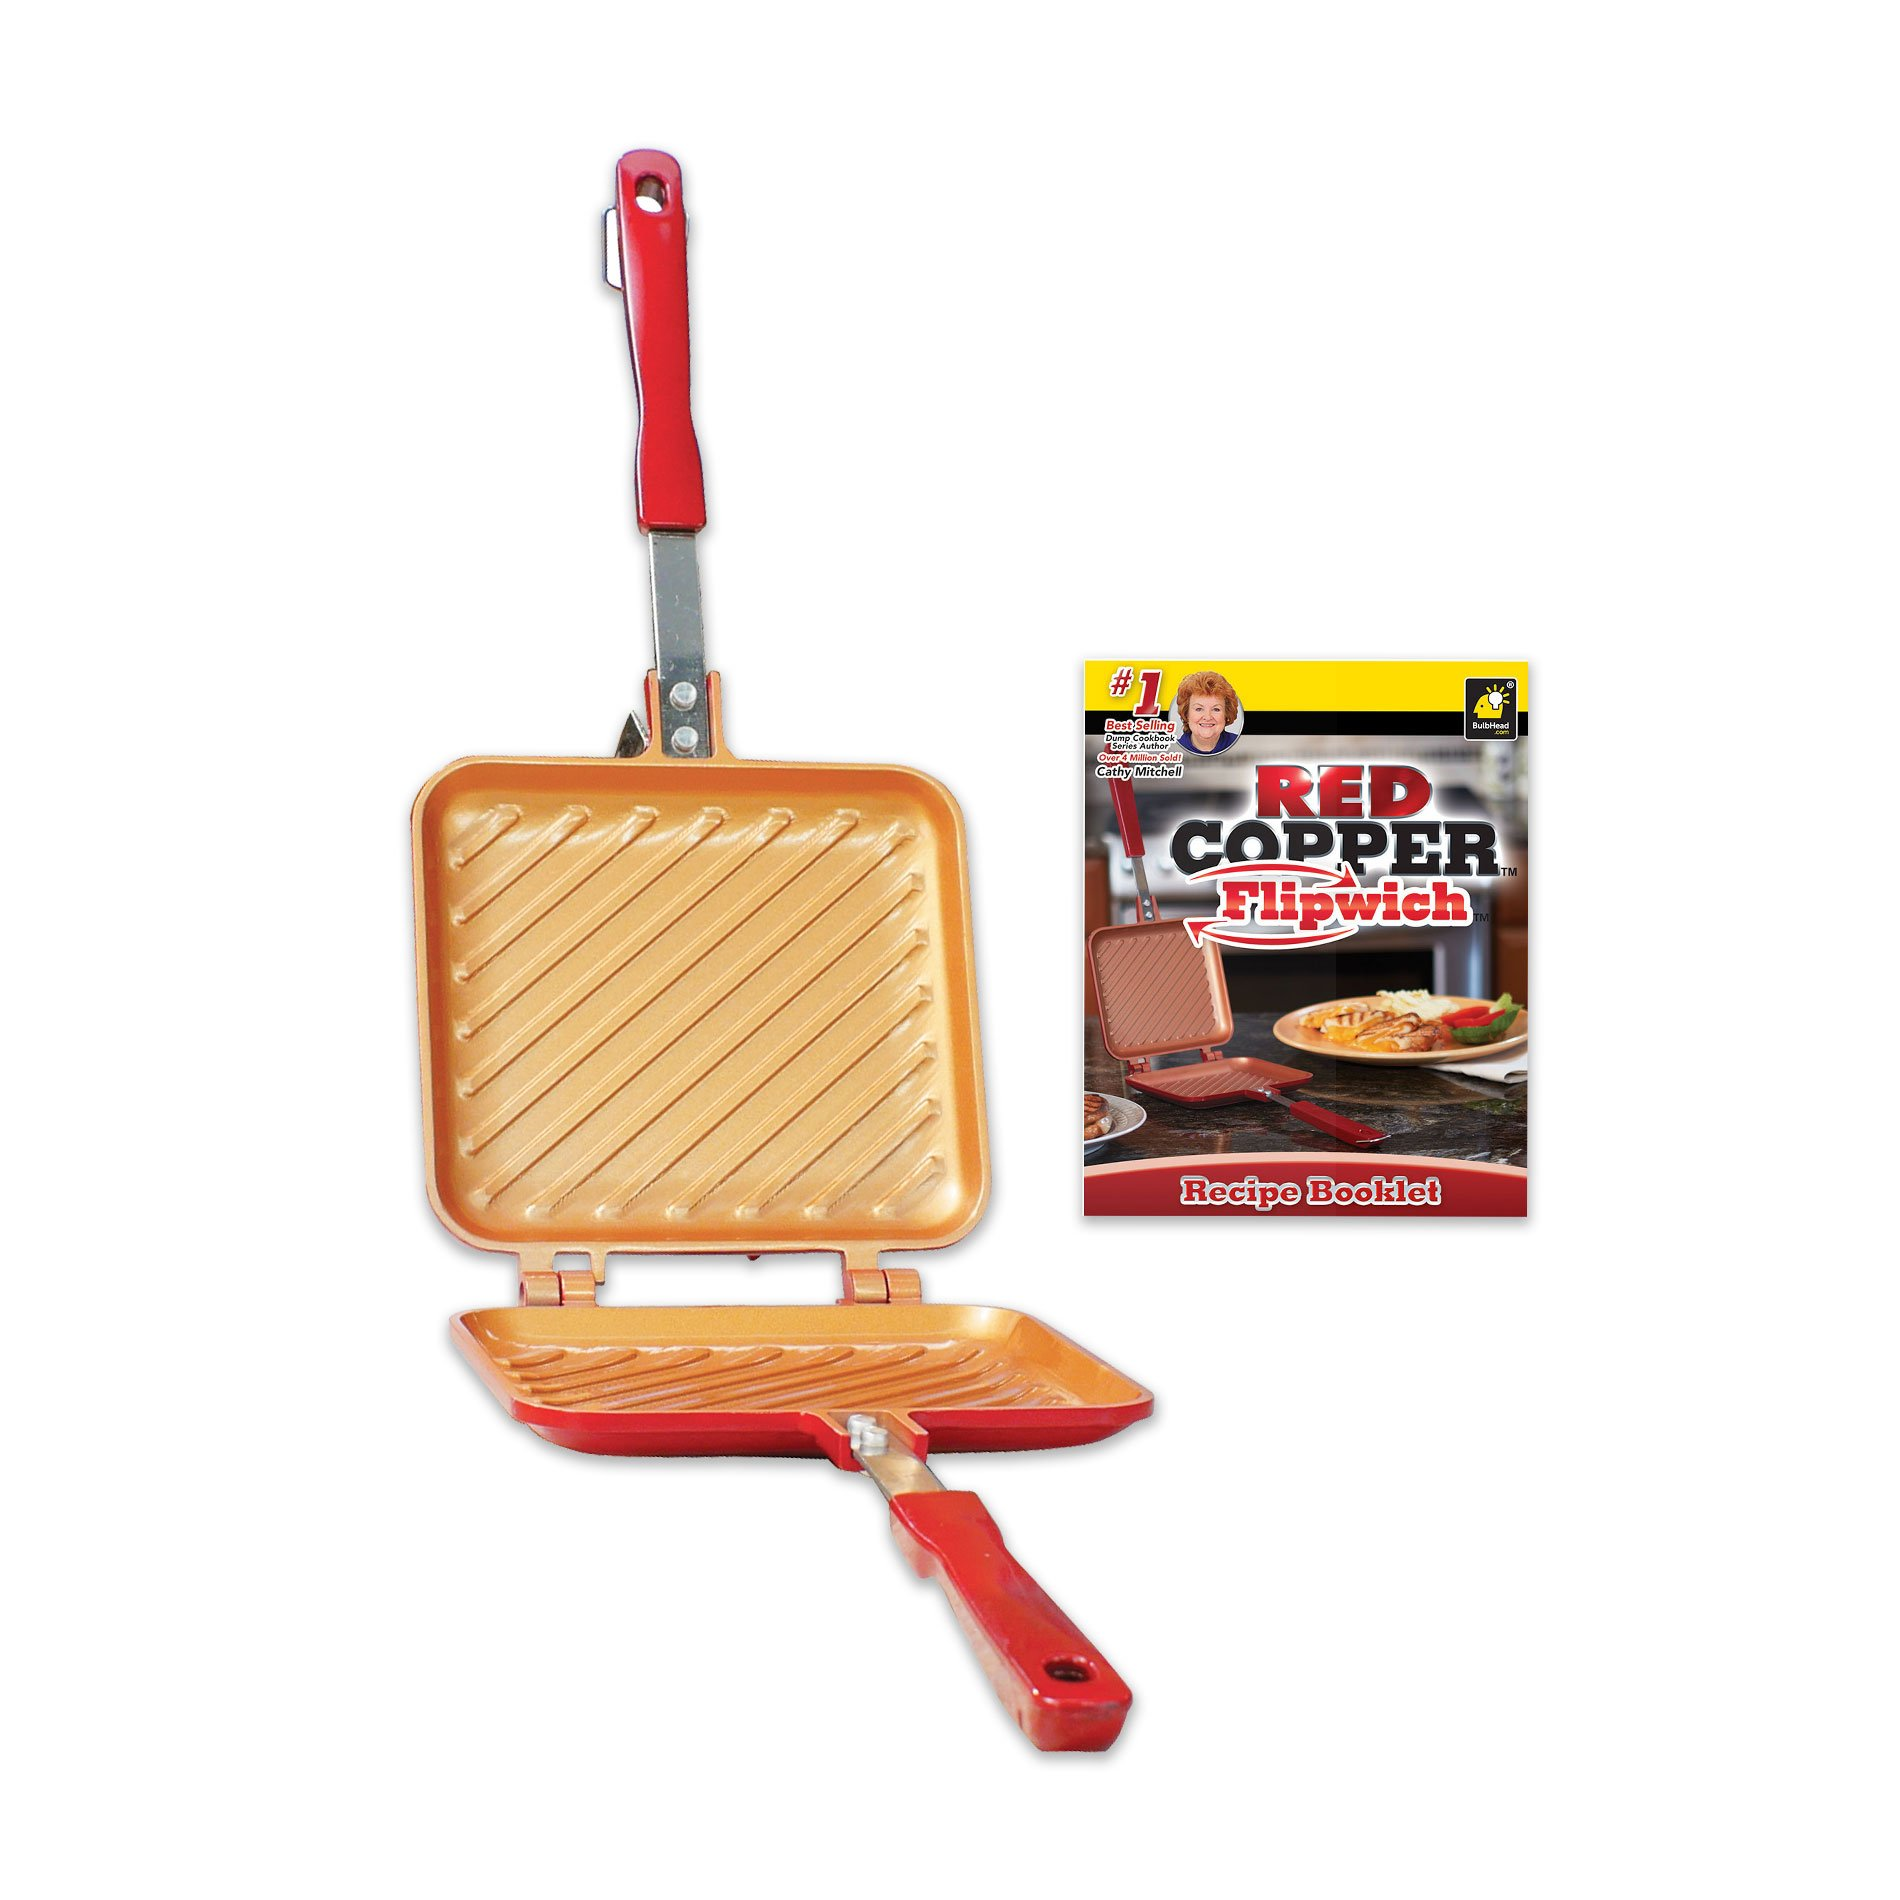 Red Copper Flipwich Non-Stick Grilled Sandwich and Panini Maker by BulbHead (1 Pack) by BulbHead (Image #1)